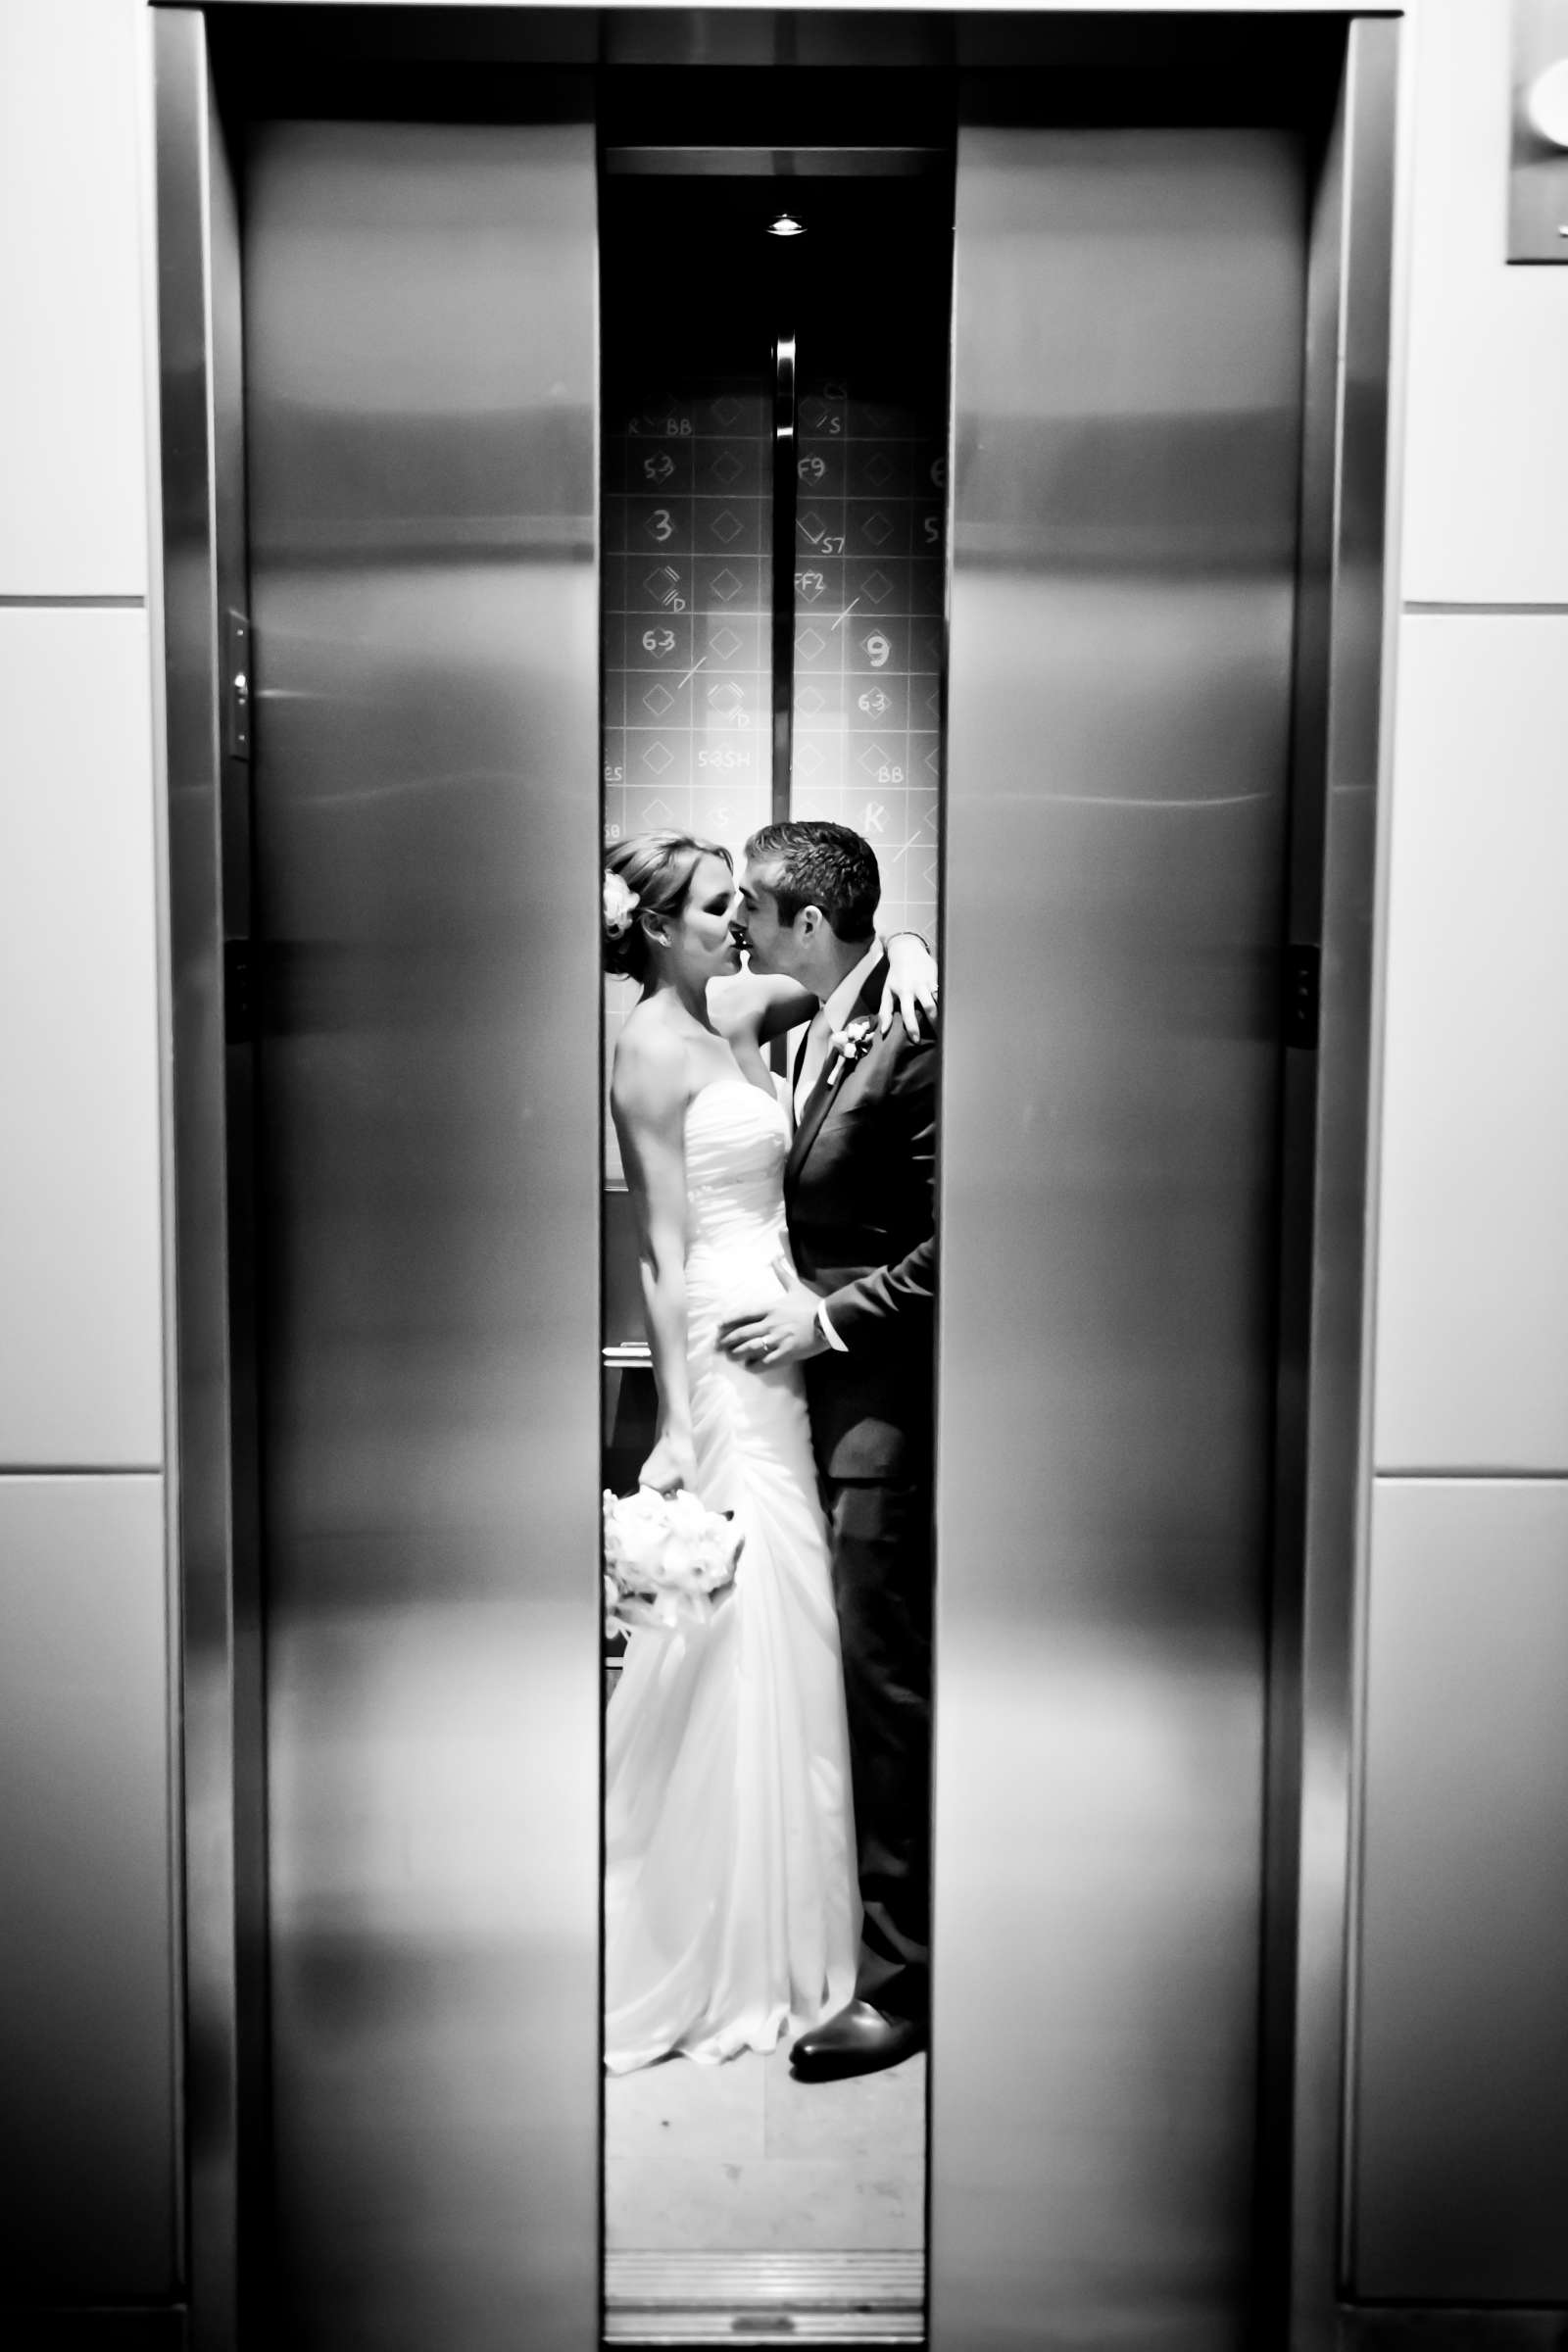 Romantic moment, Urban Downtown at Ultimate Skybox Wedding, Chelsea and Frank Wedding Photo #4 by True Photography